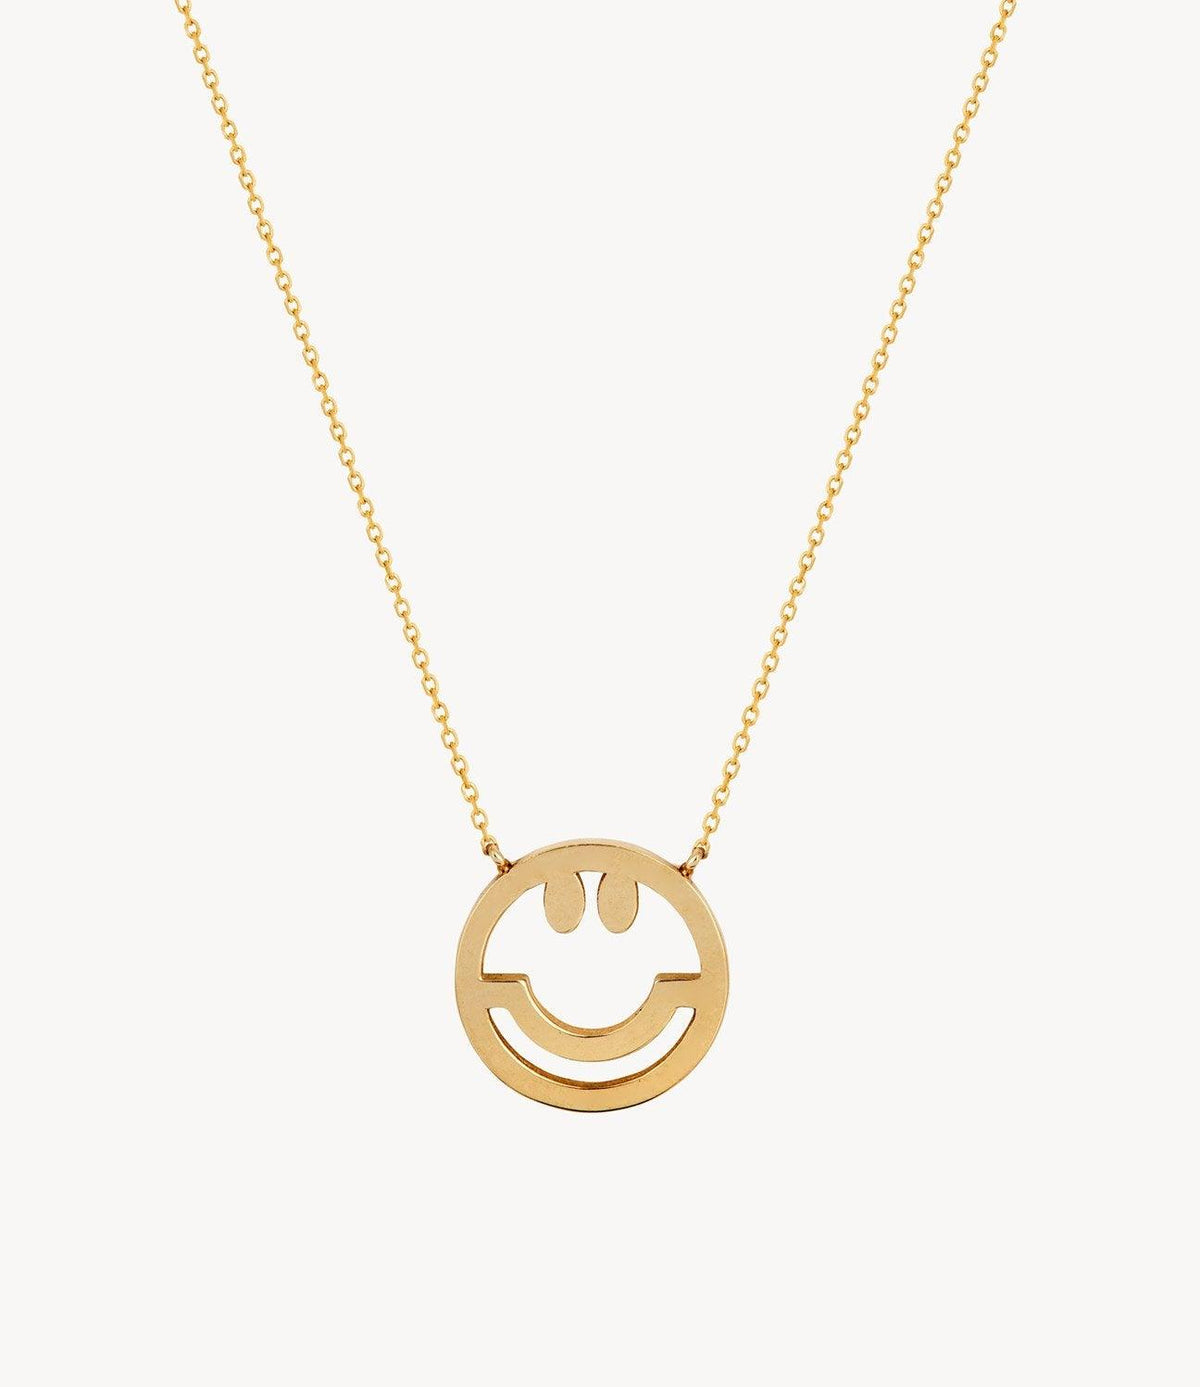 Gold, Have a Nice Day Necklace